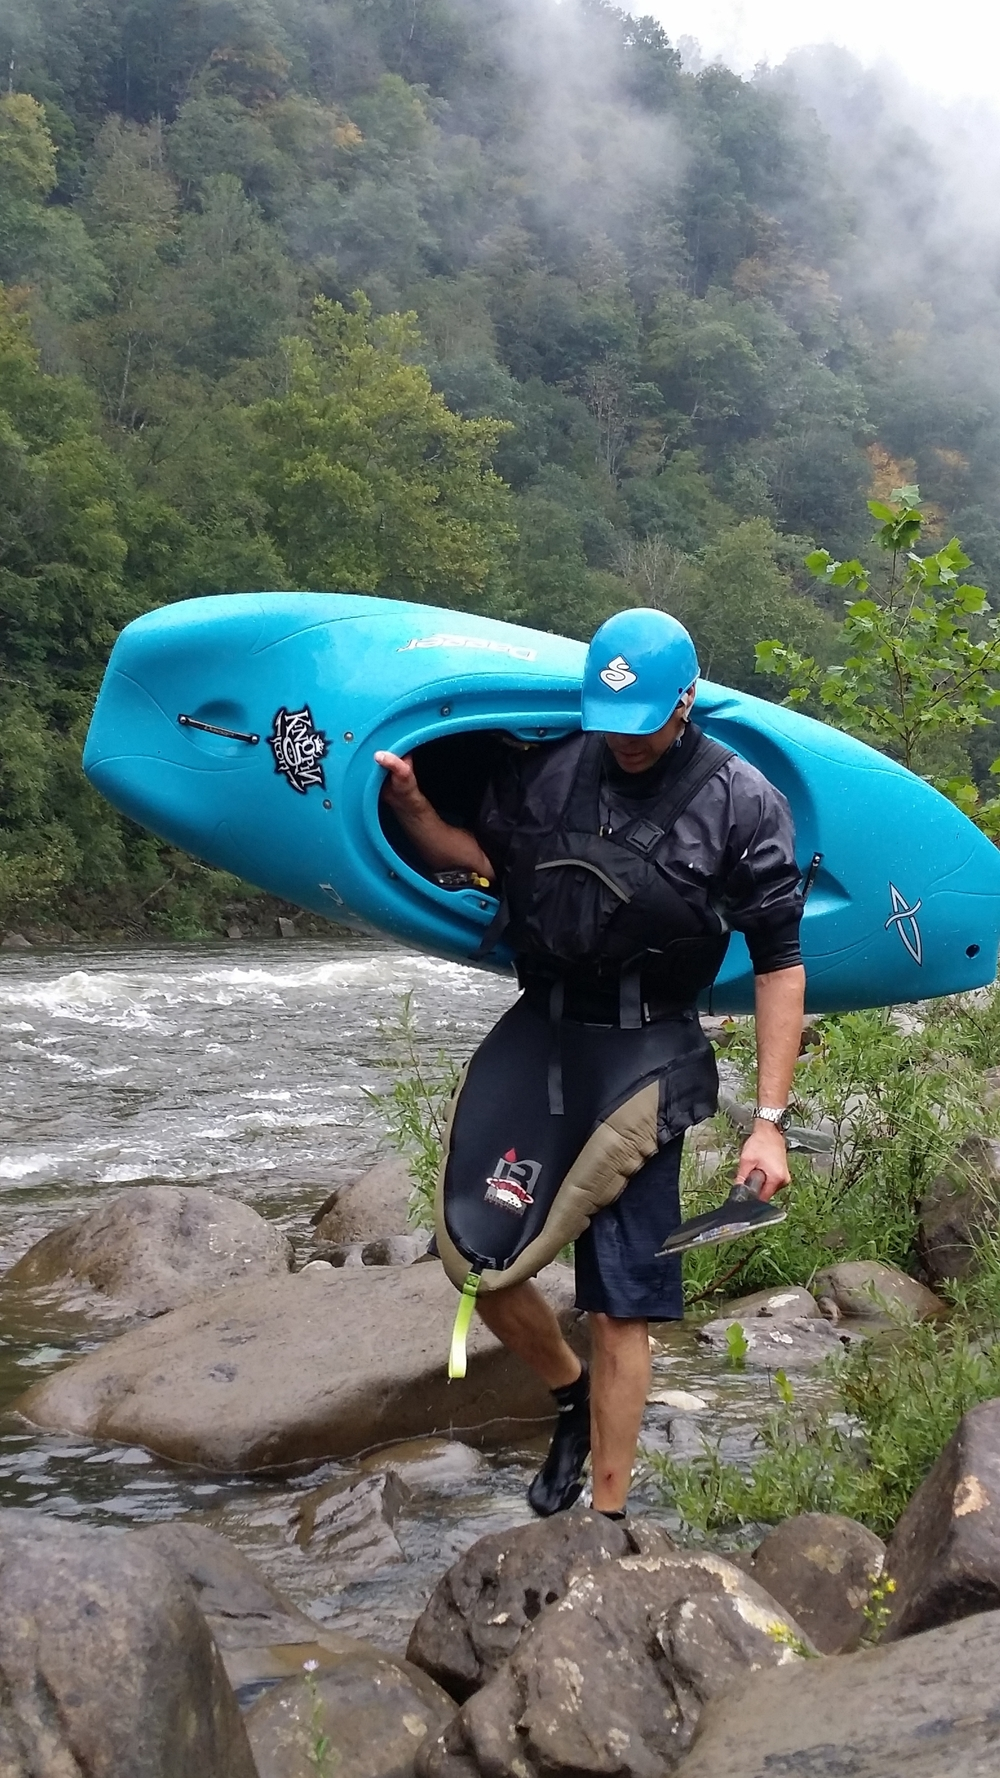 Accessing the Gauley River, courtesy of the LWCF. Photo credit: Eric Brooks.